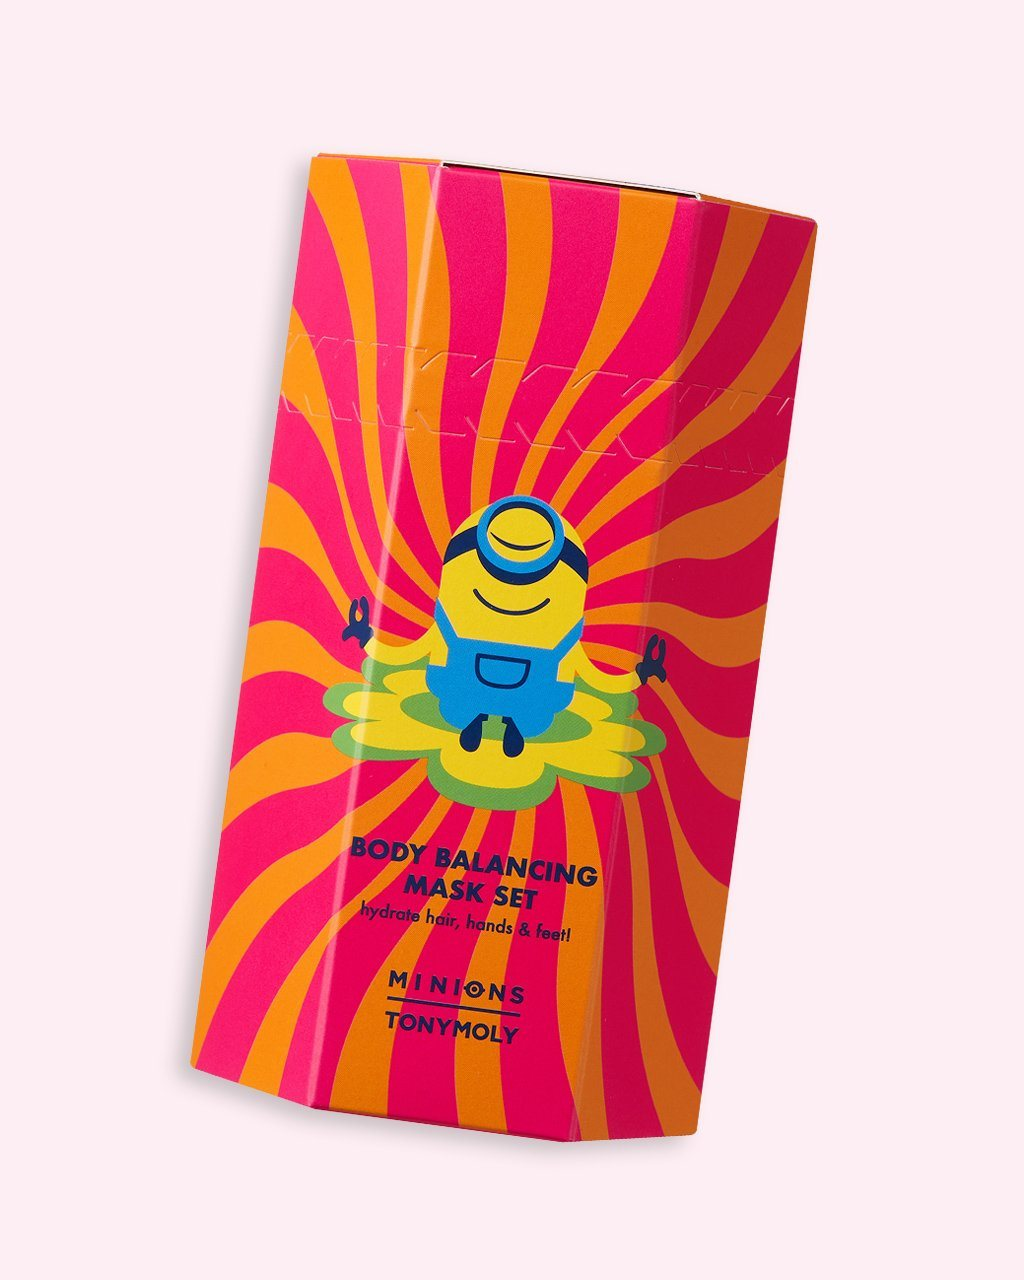 Minions Body Balancing Mask Set Product Packaging